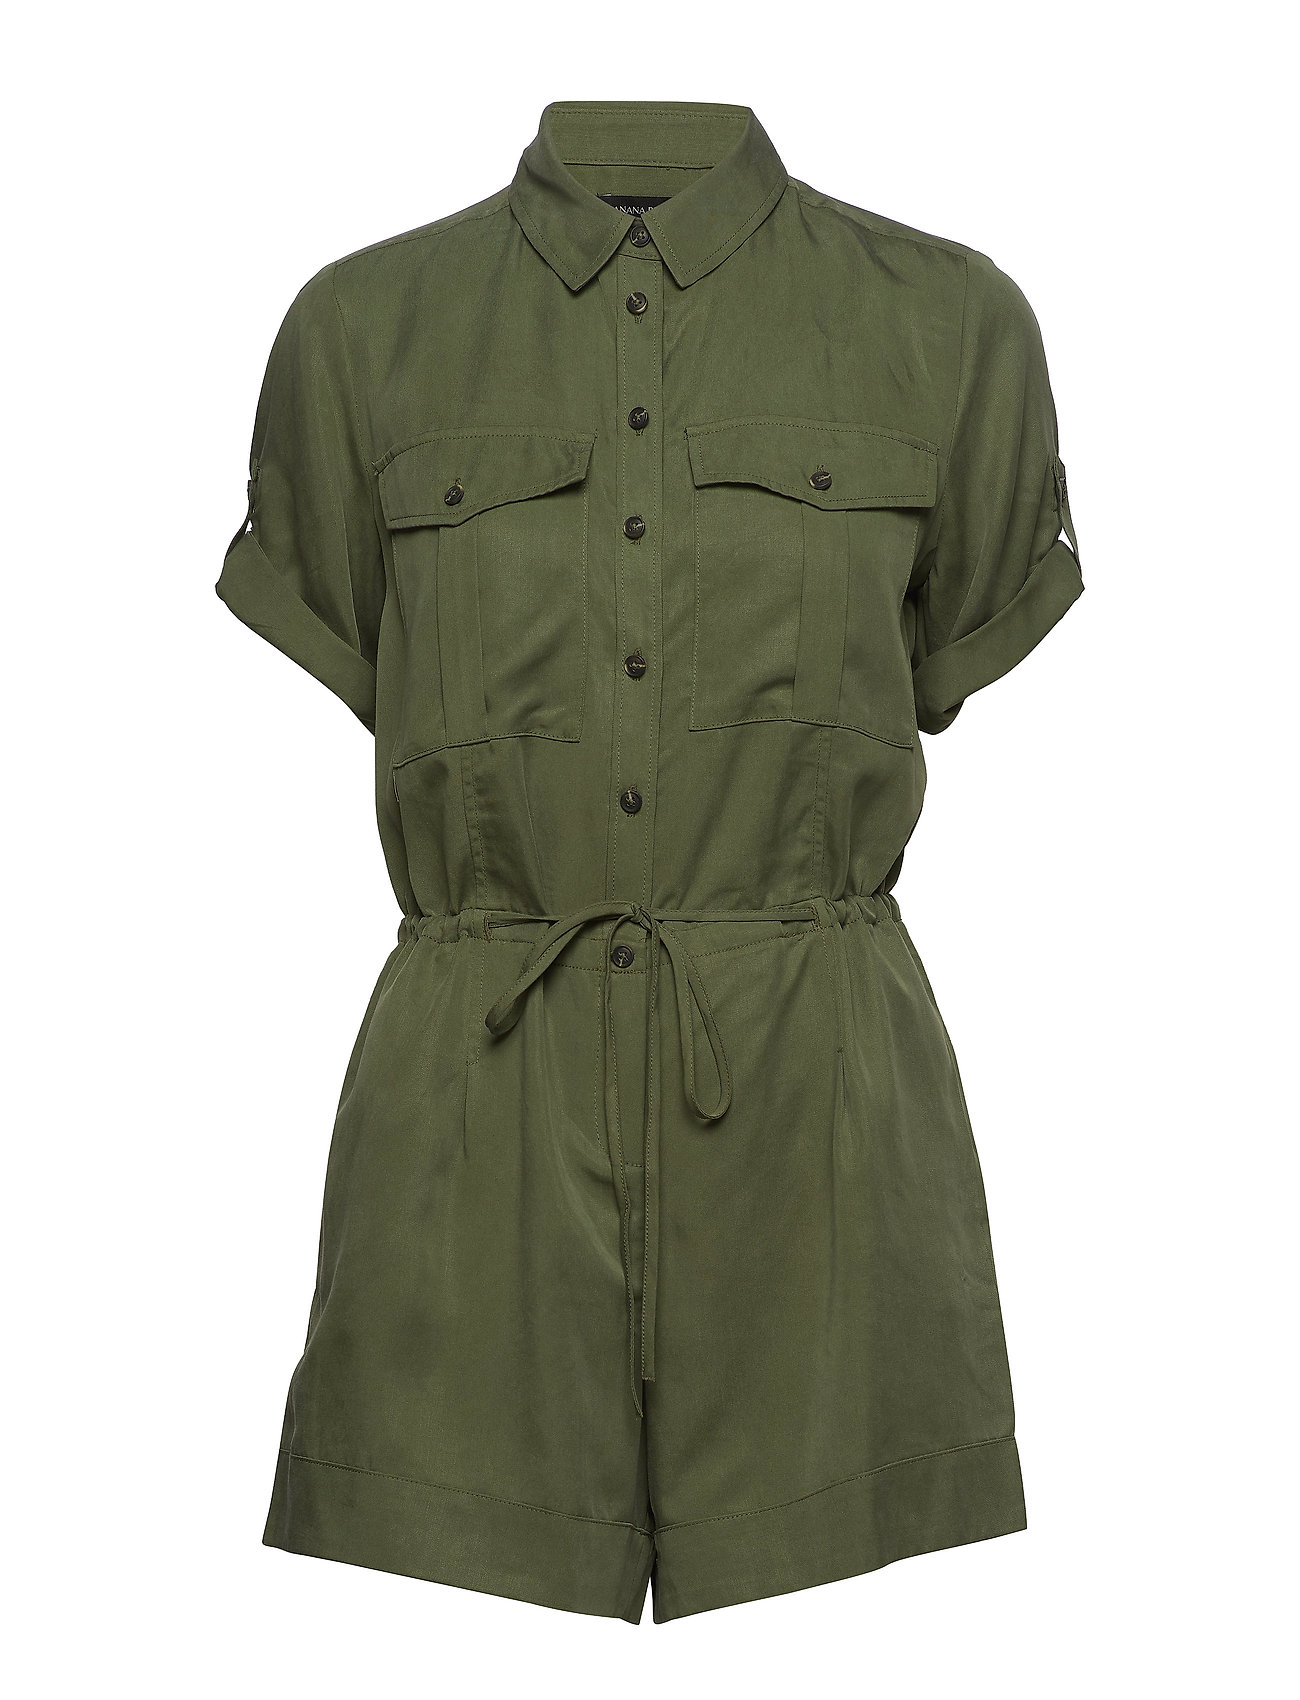 Banana Republic TENCEL™ Utility Romper - FLIGHT JACKET